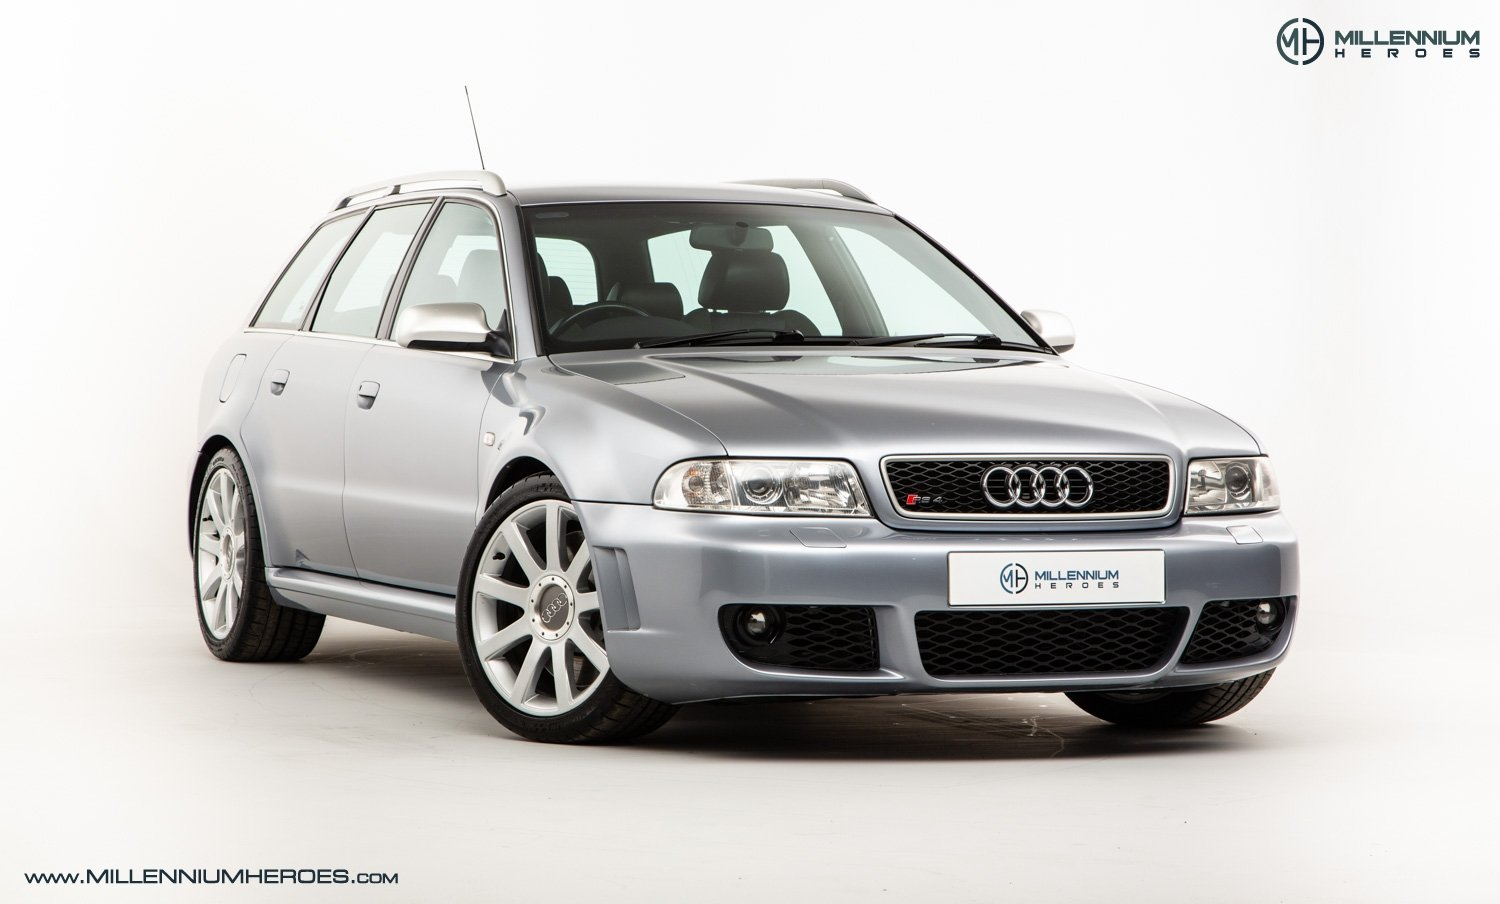 2001 AUDI B5 RS4 AVANT // 95K MILES // AVUS SILVER For Sale (picture 6 of 28)